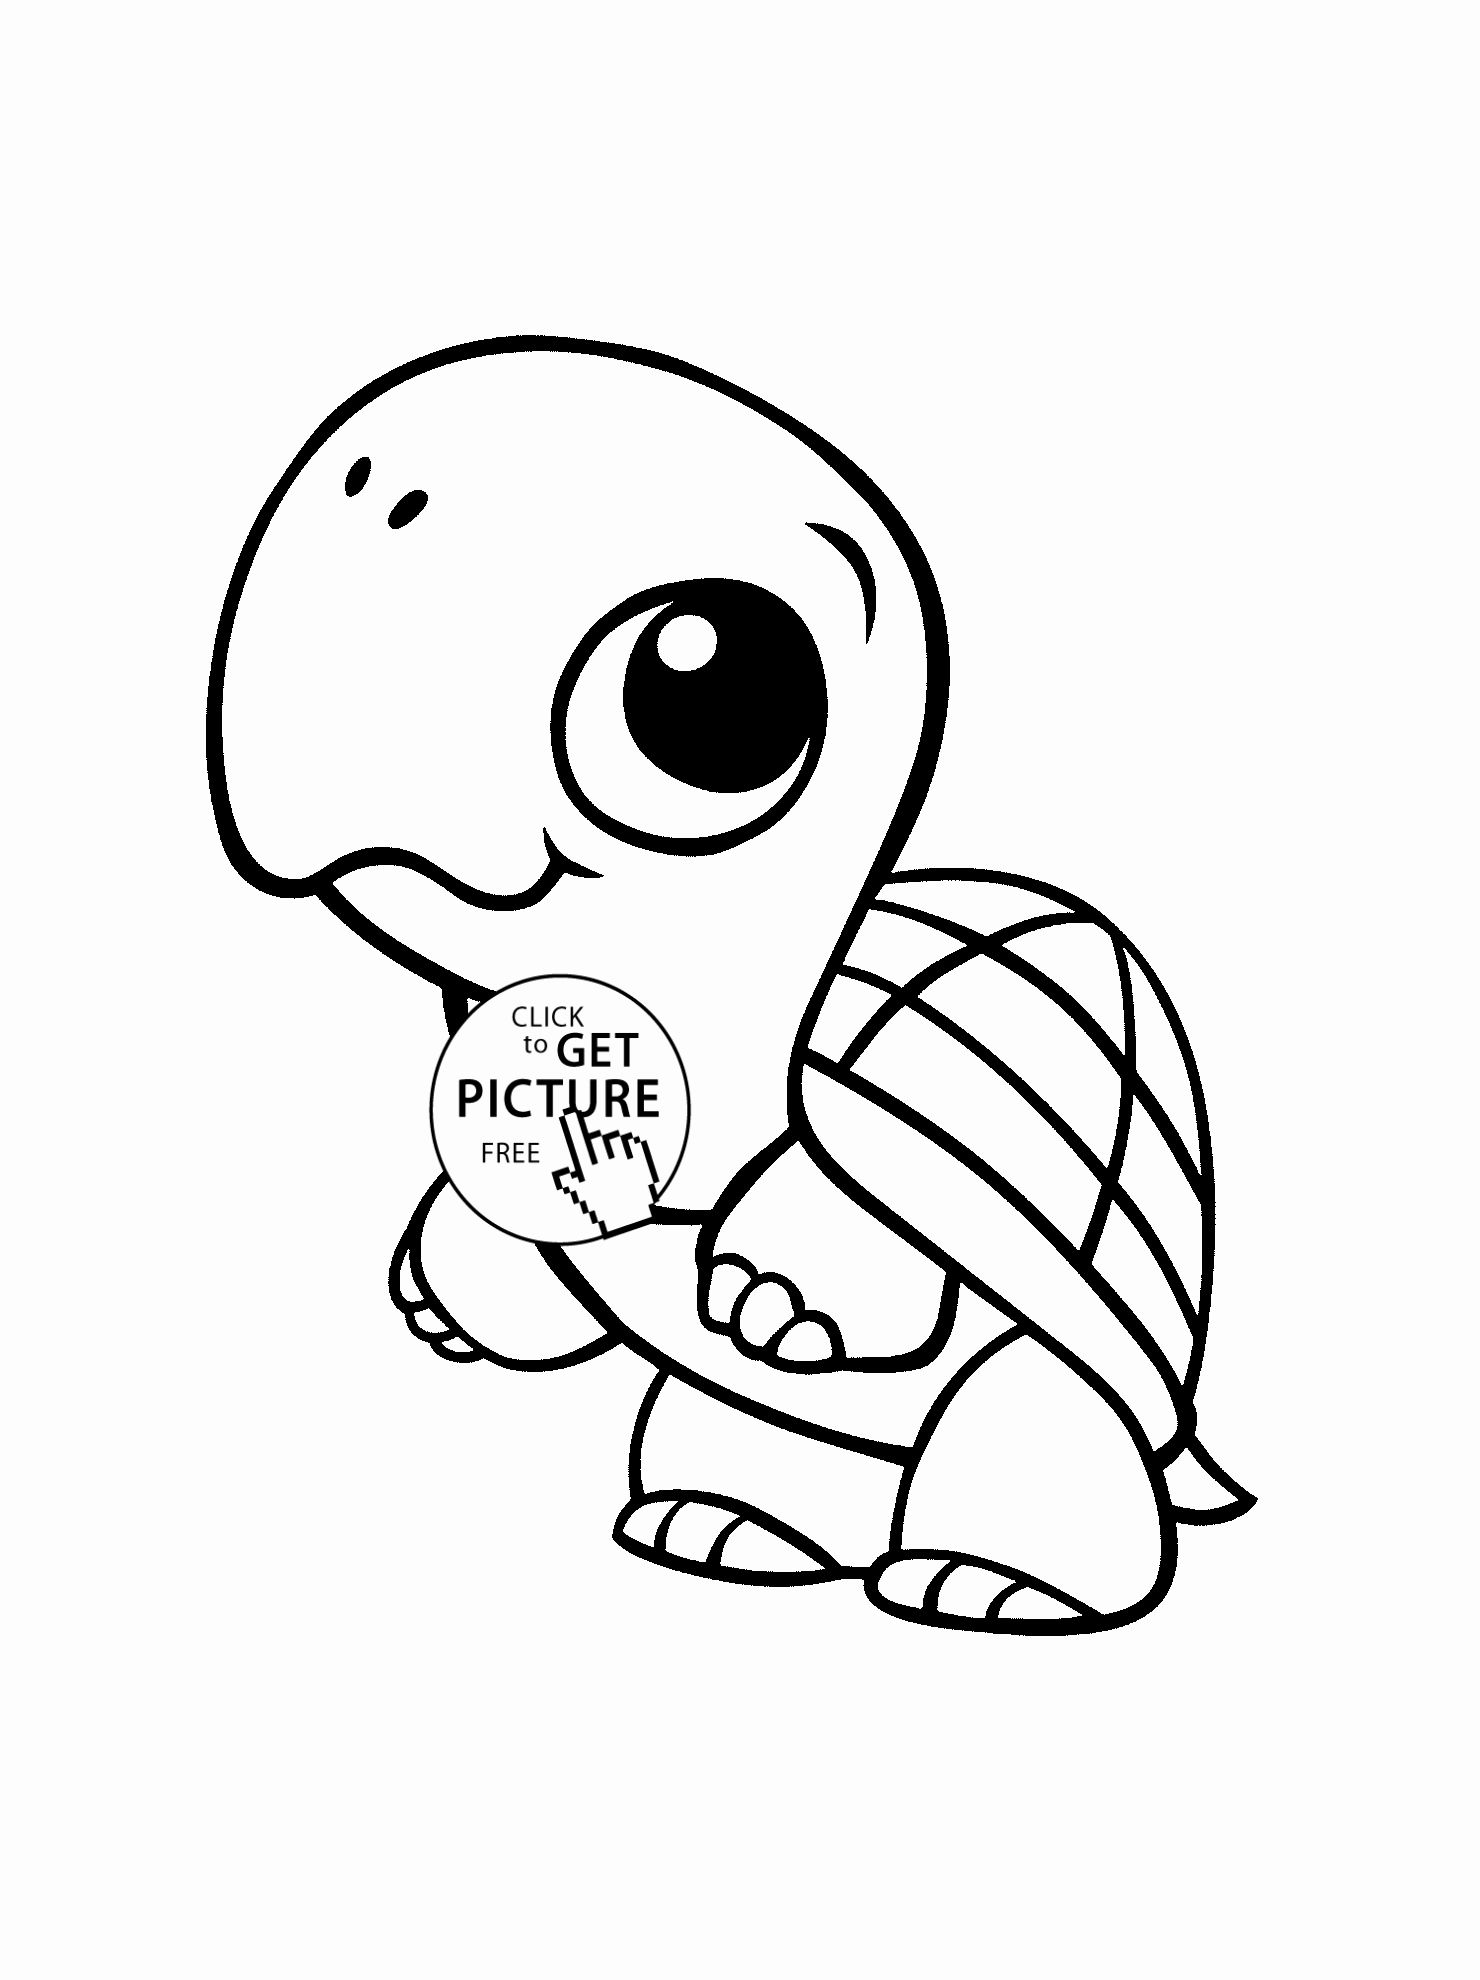 Ocean Coloring Pages For Kids Lovely Top 48 Supreme Animal Coloring Page Turtle Pages Baby For Animal Coloring Pages Turtle Coloring Pages Cute Coloring Pages